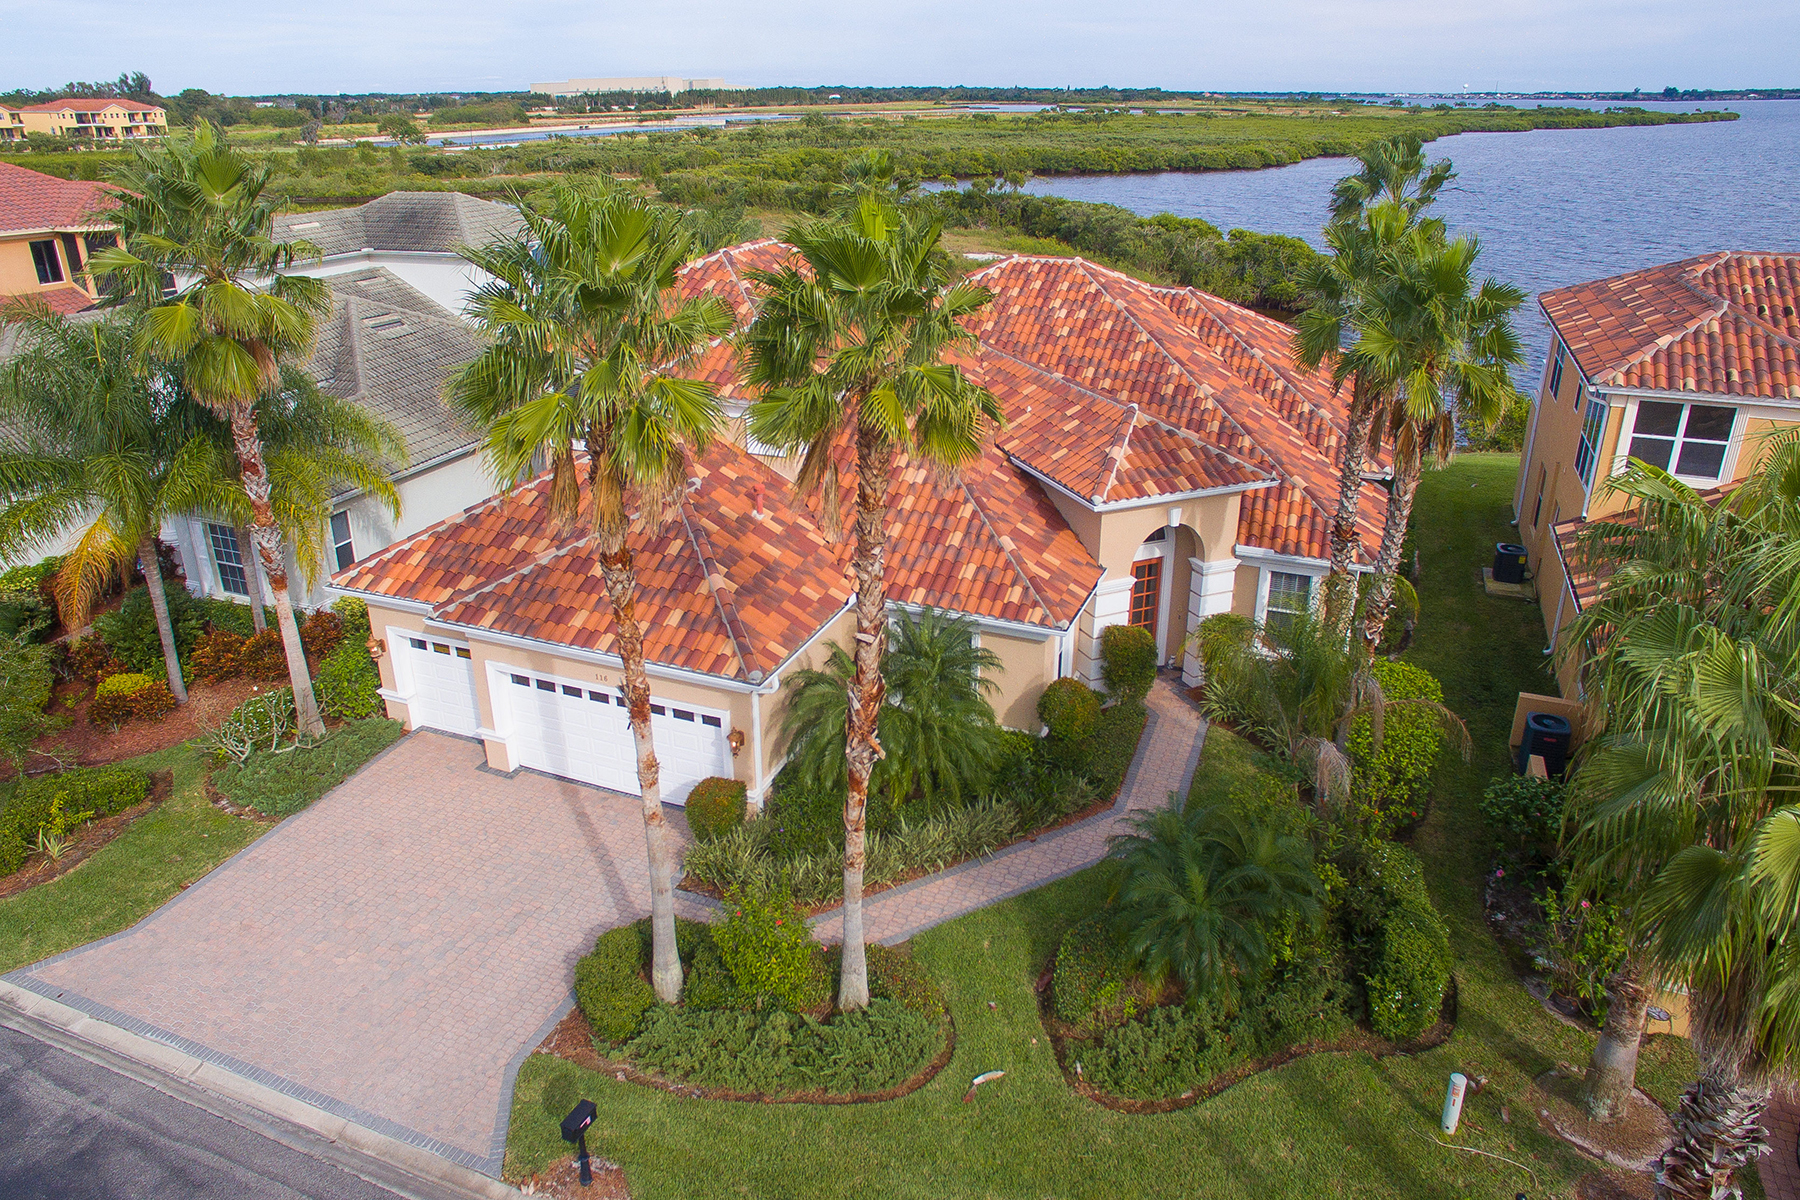 Single Family Home for Sale at PENINSULA RIVIERA DUNES 116 12th Ave E Palmetto, Florida 34221 United States